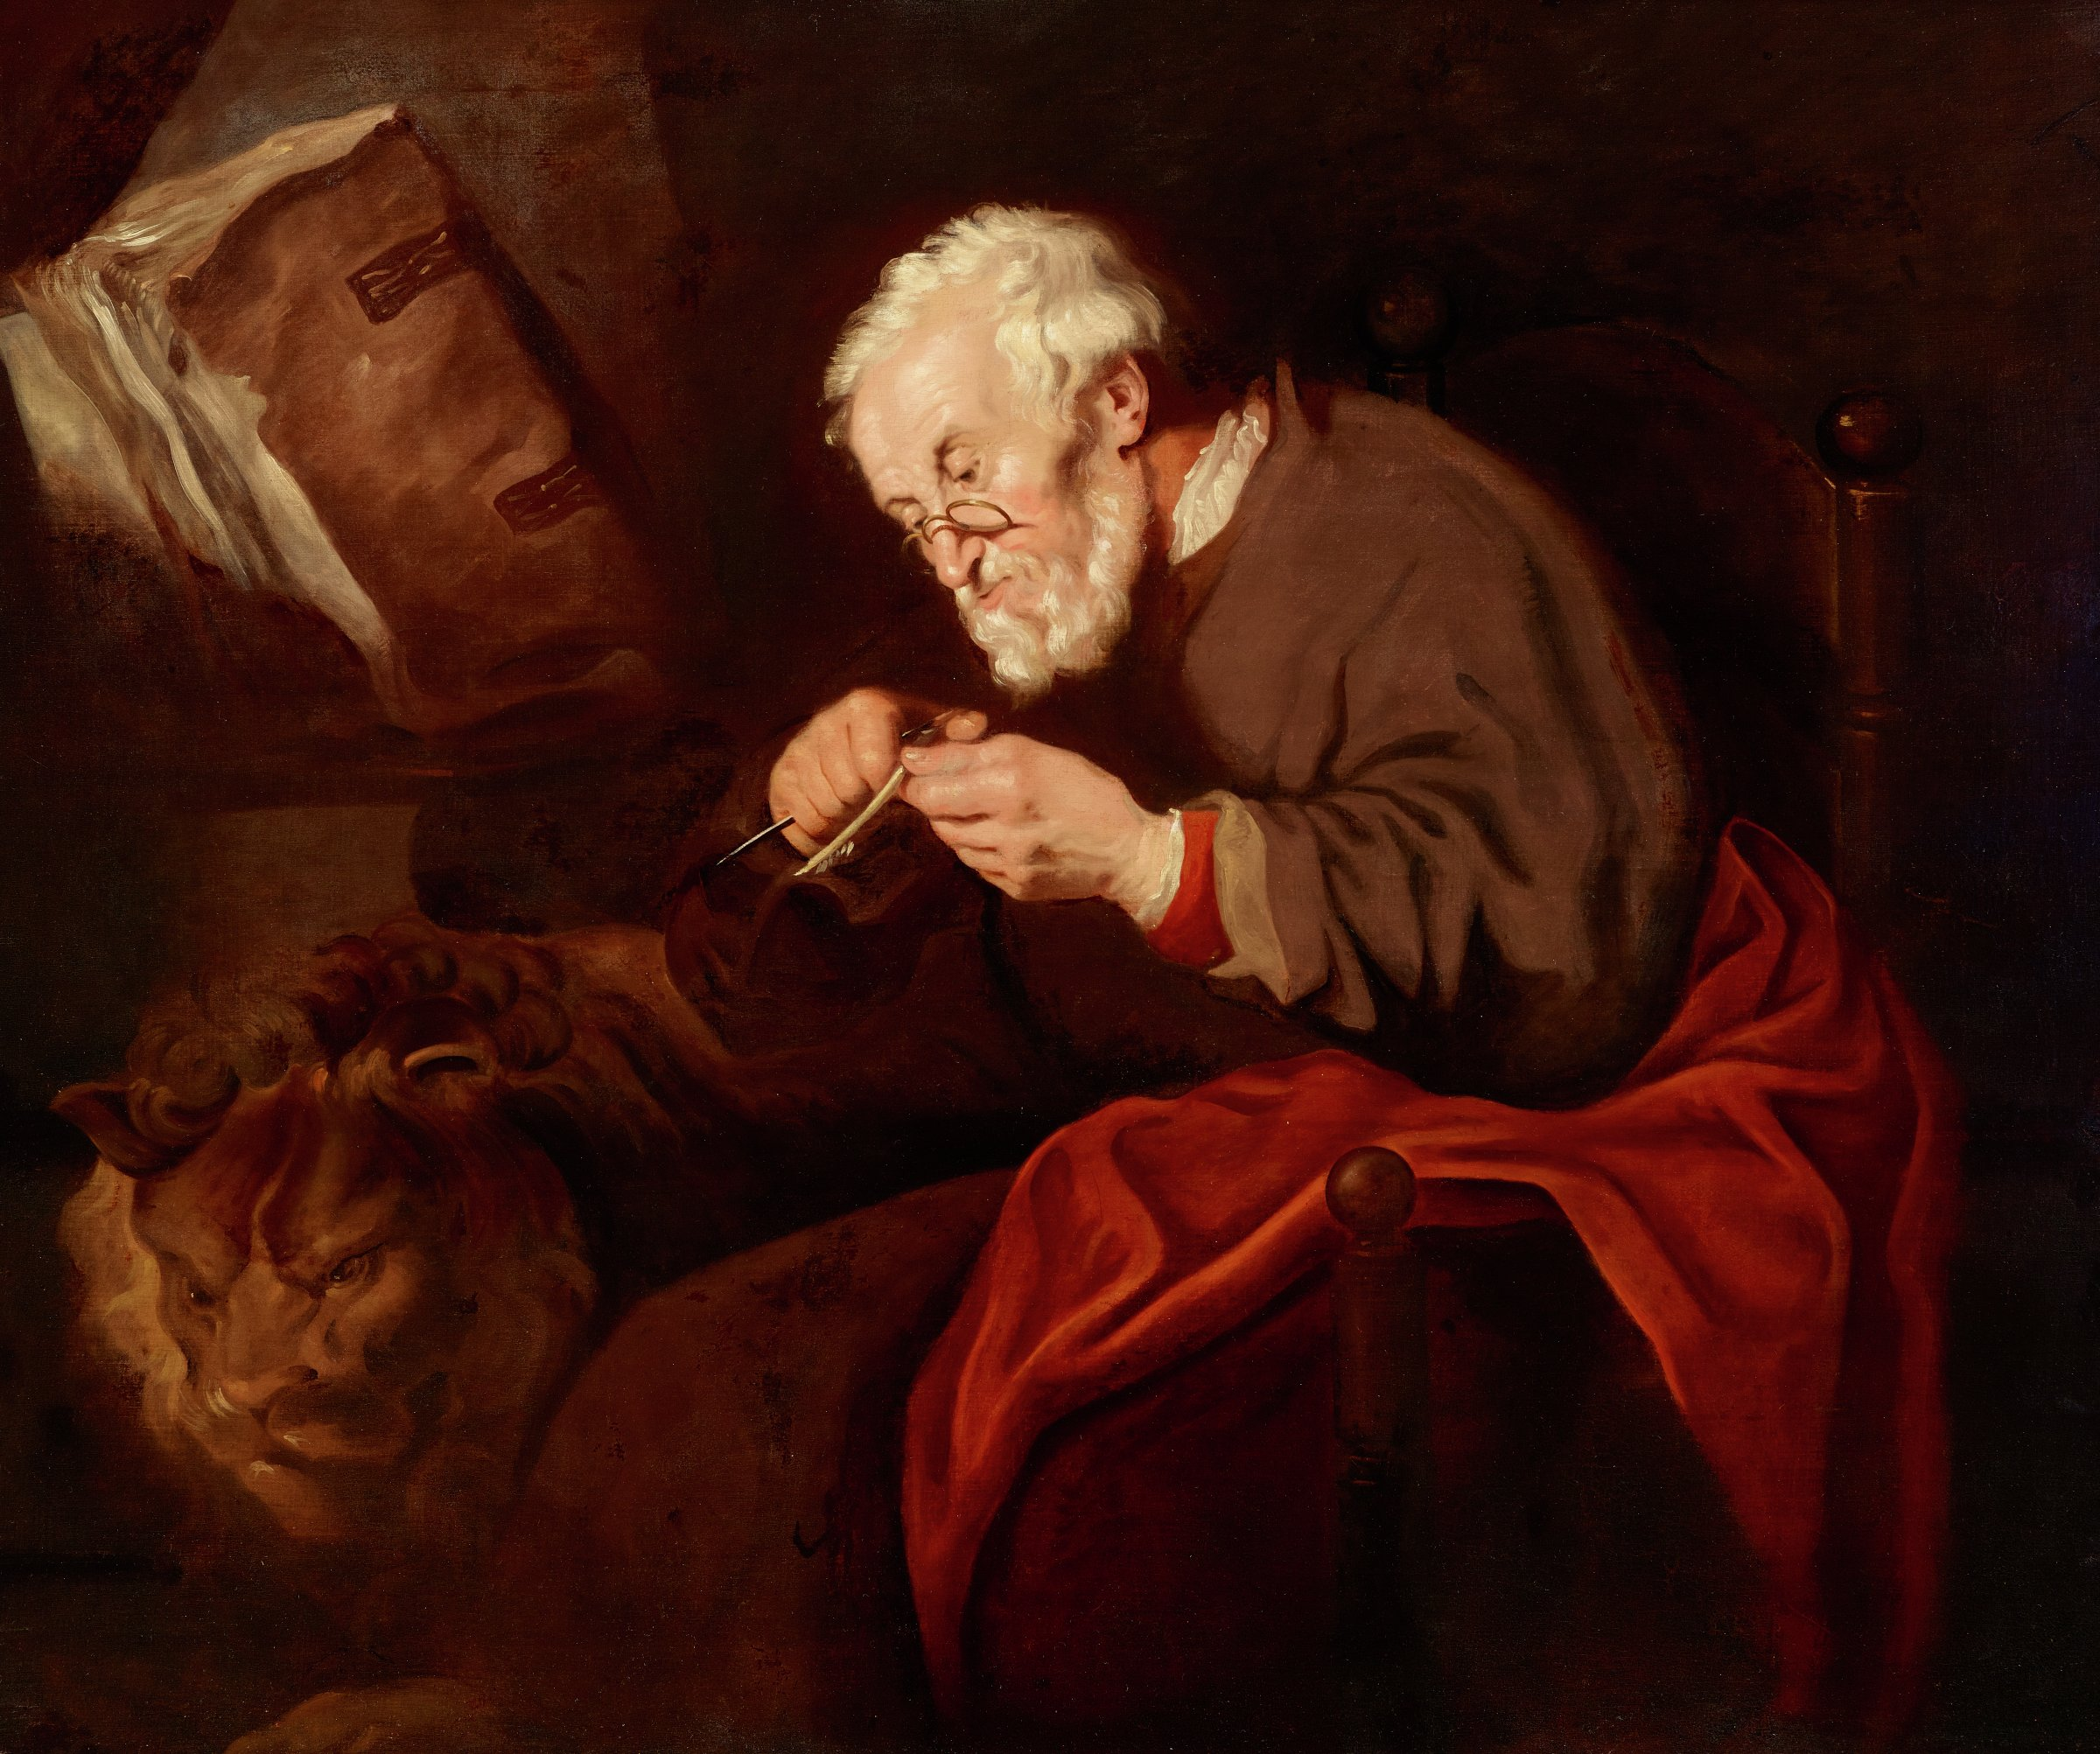 Saint Mark the Evangelist, Attributed to Jan Lievensz, oil on canvas